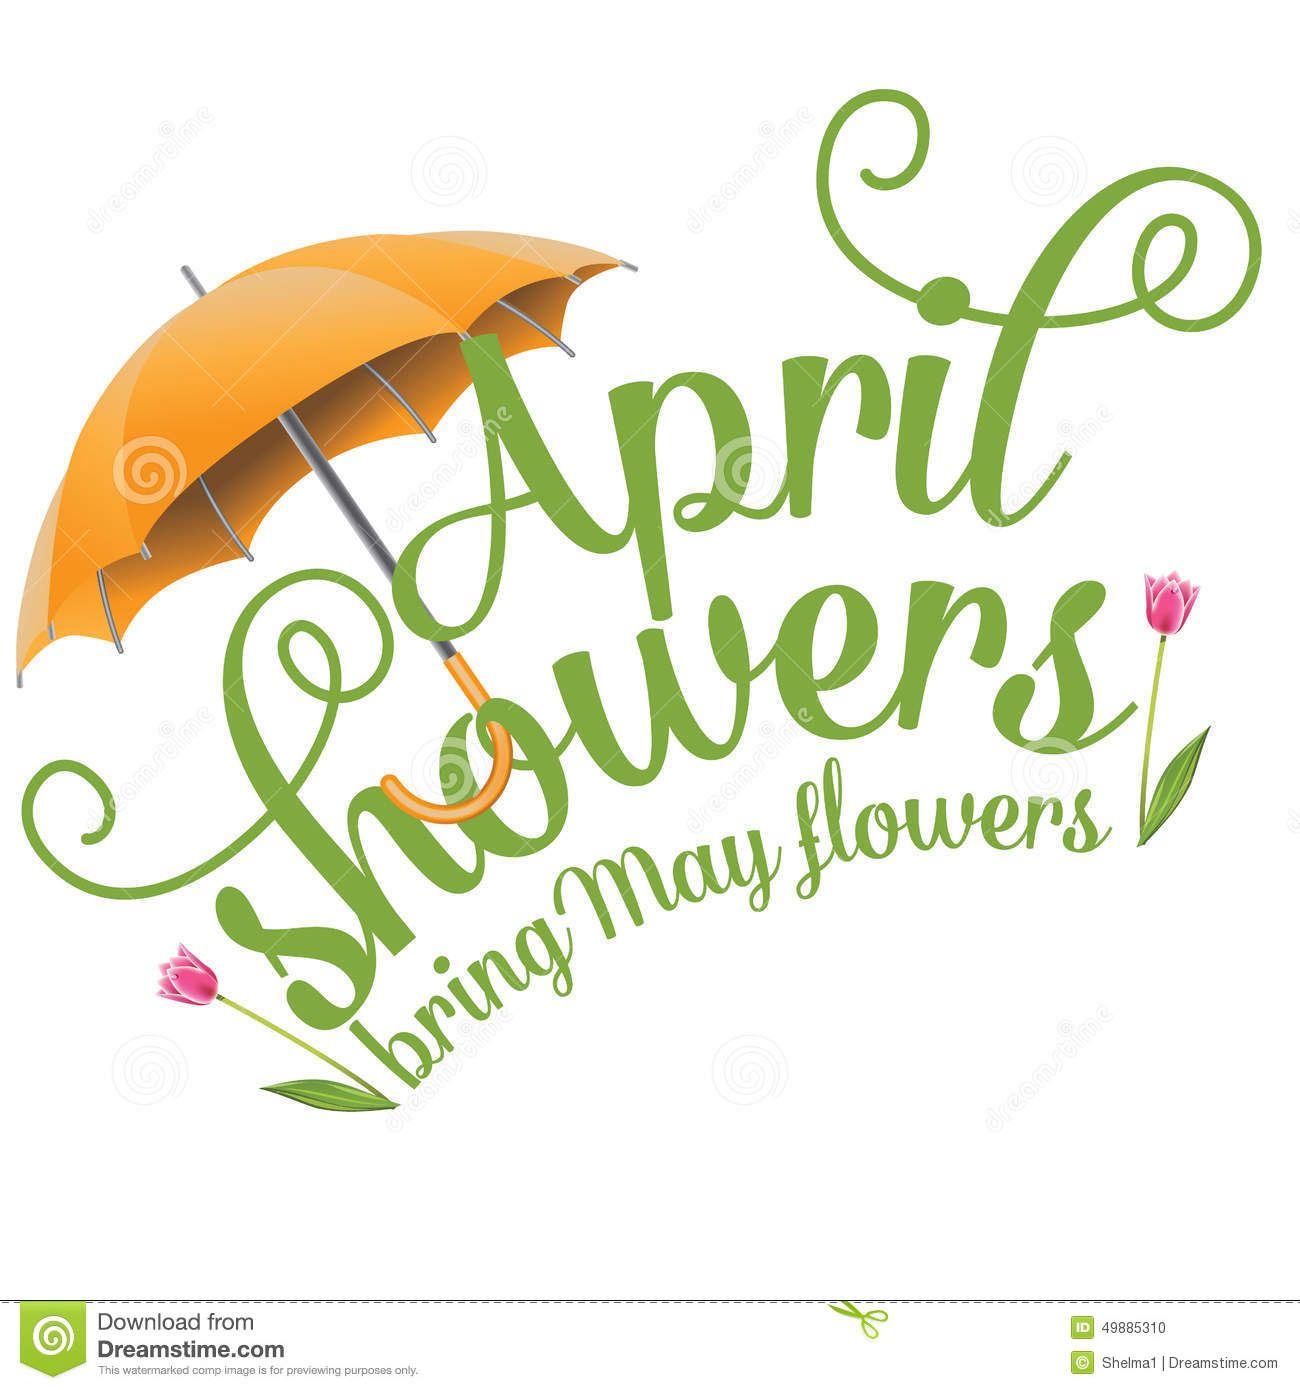 april clip art april showers bring may flowers design stock vector rh pinterest com april showers clipart free april showers clipart